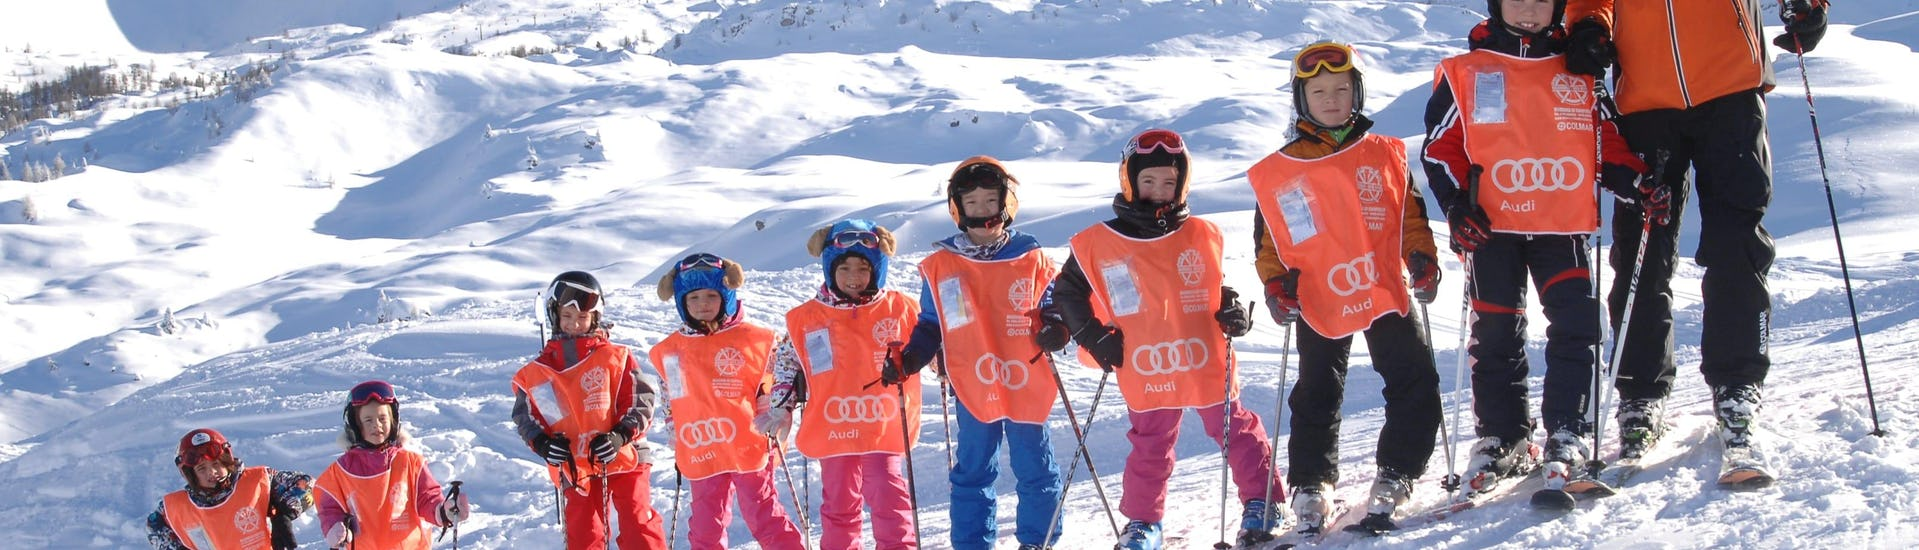 Children take ski lessons